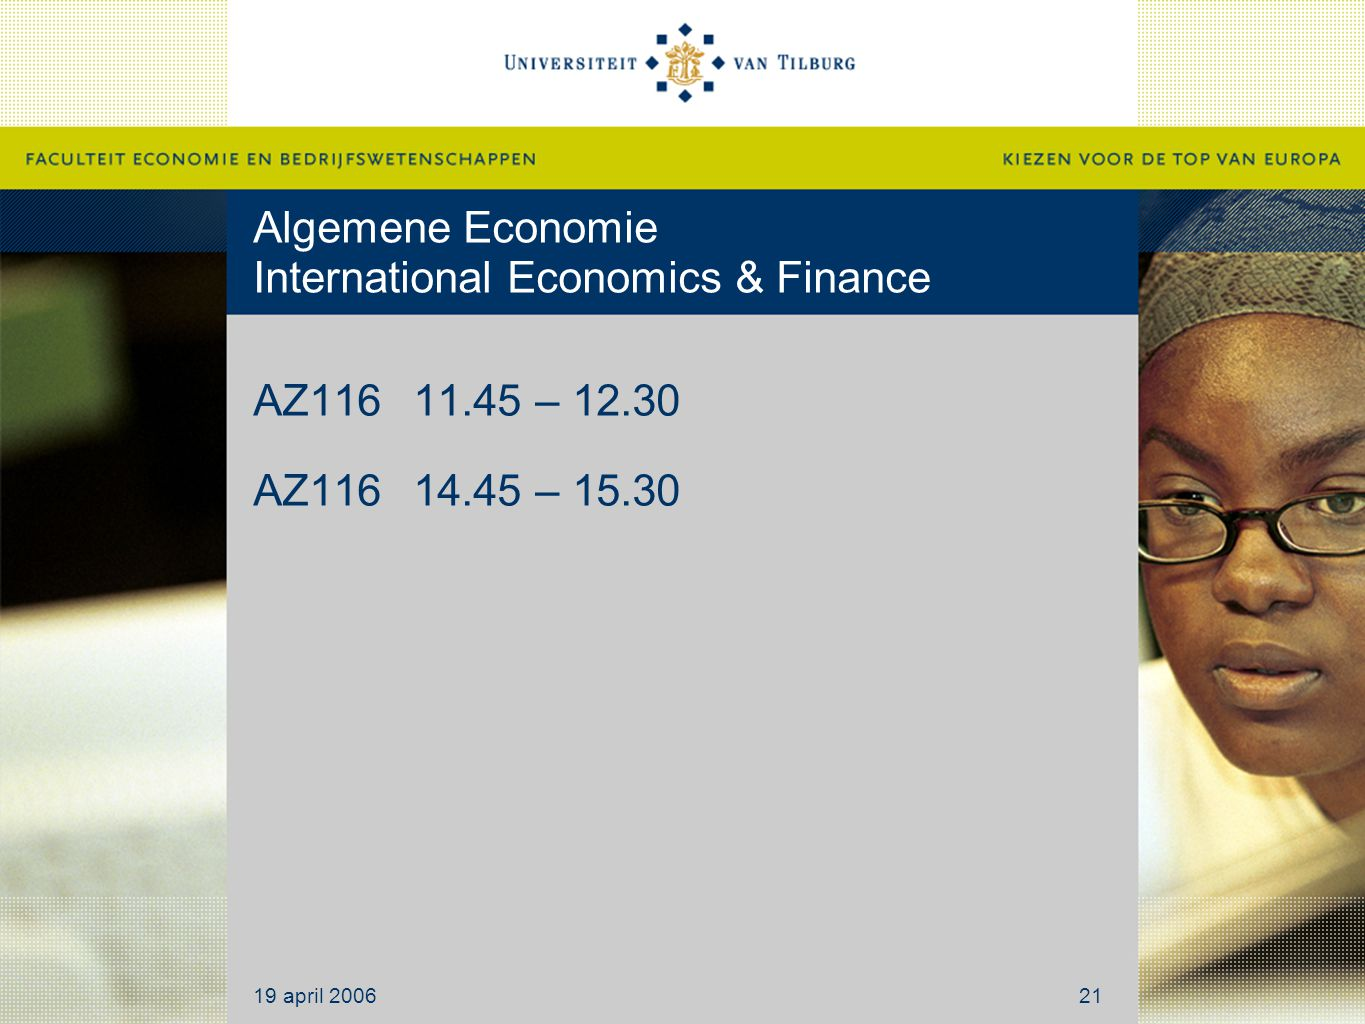 Algemene Economie International Economics & Finance AZ11611.45 – 12.30 AZ11614.45 – 15.30 19 april 200621